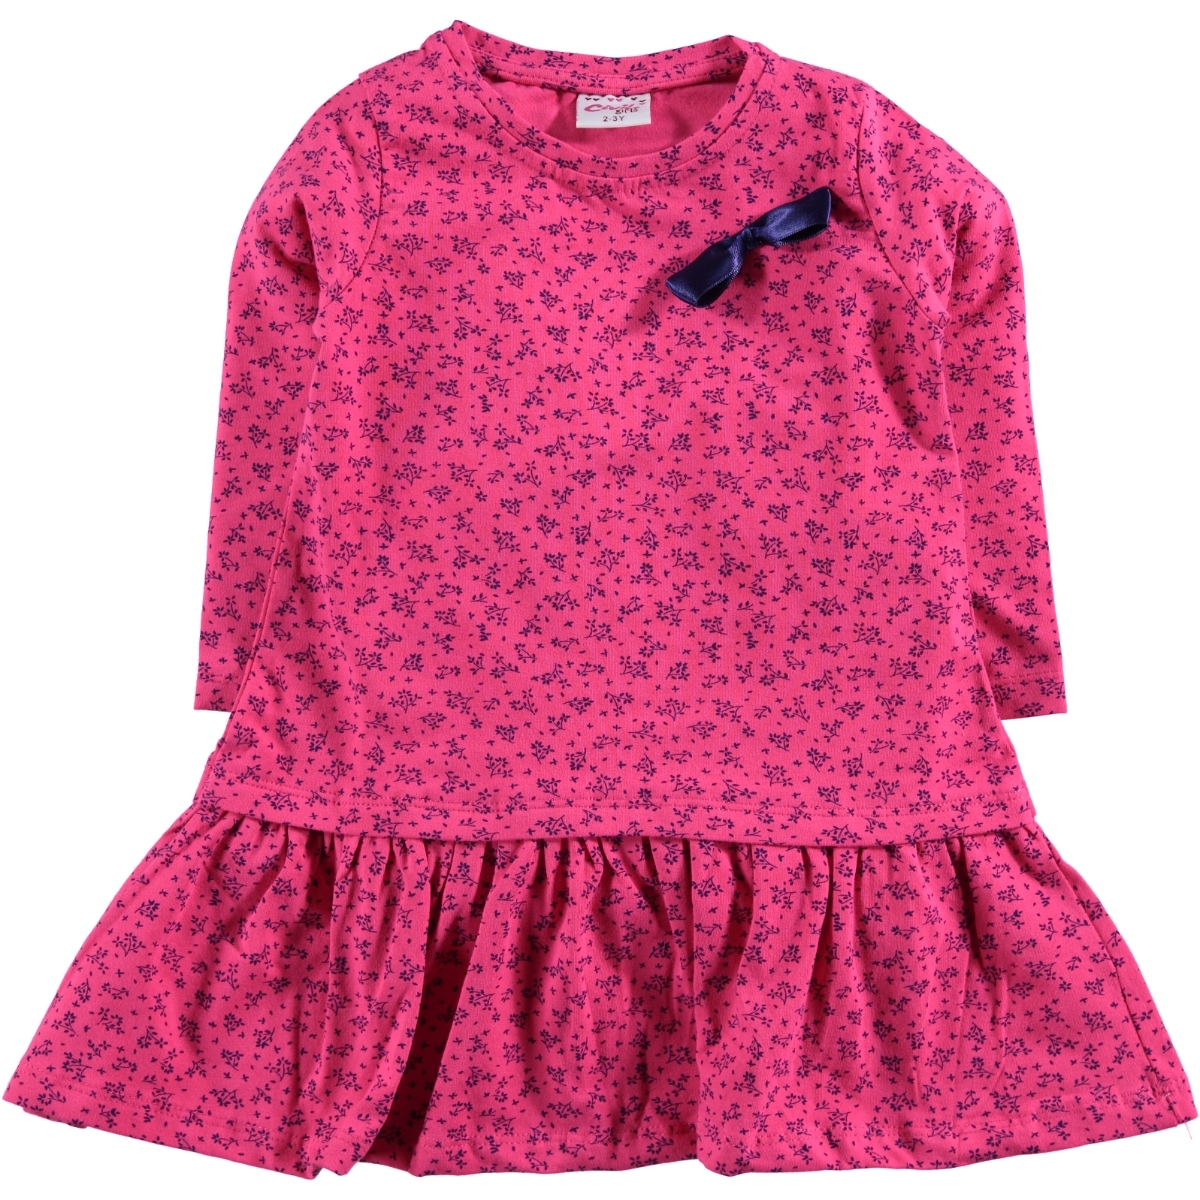 Civil Girls Fuchsia Girls Dress 2-5 Years